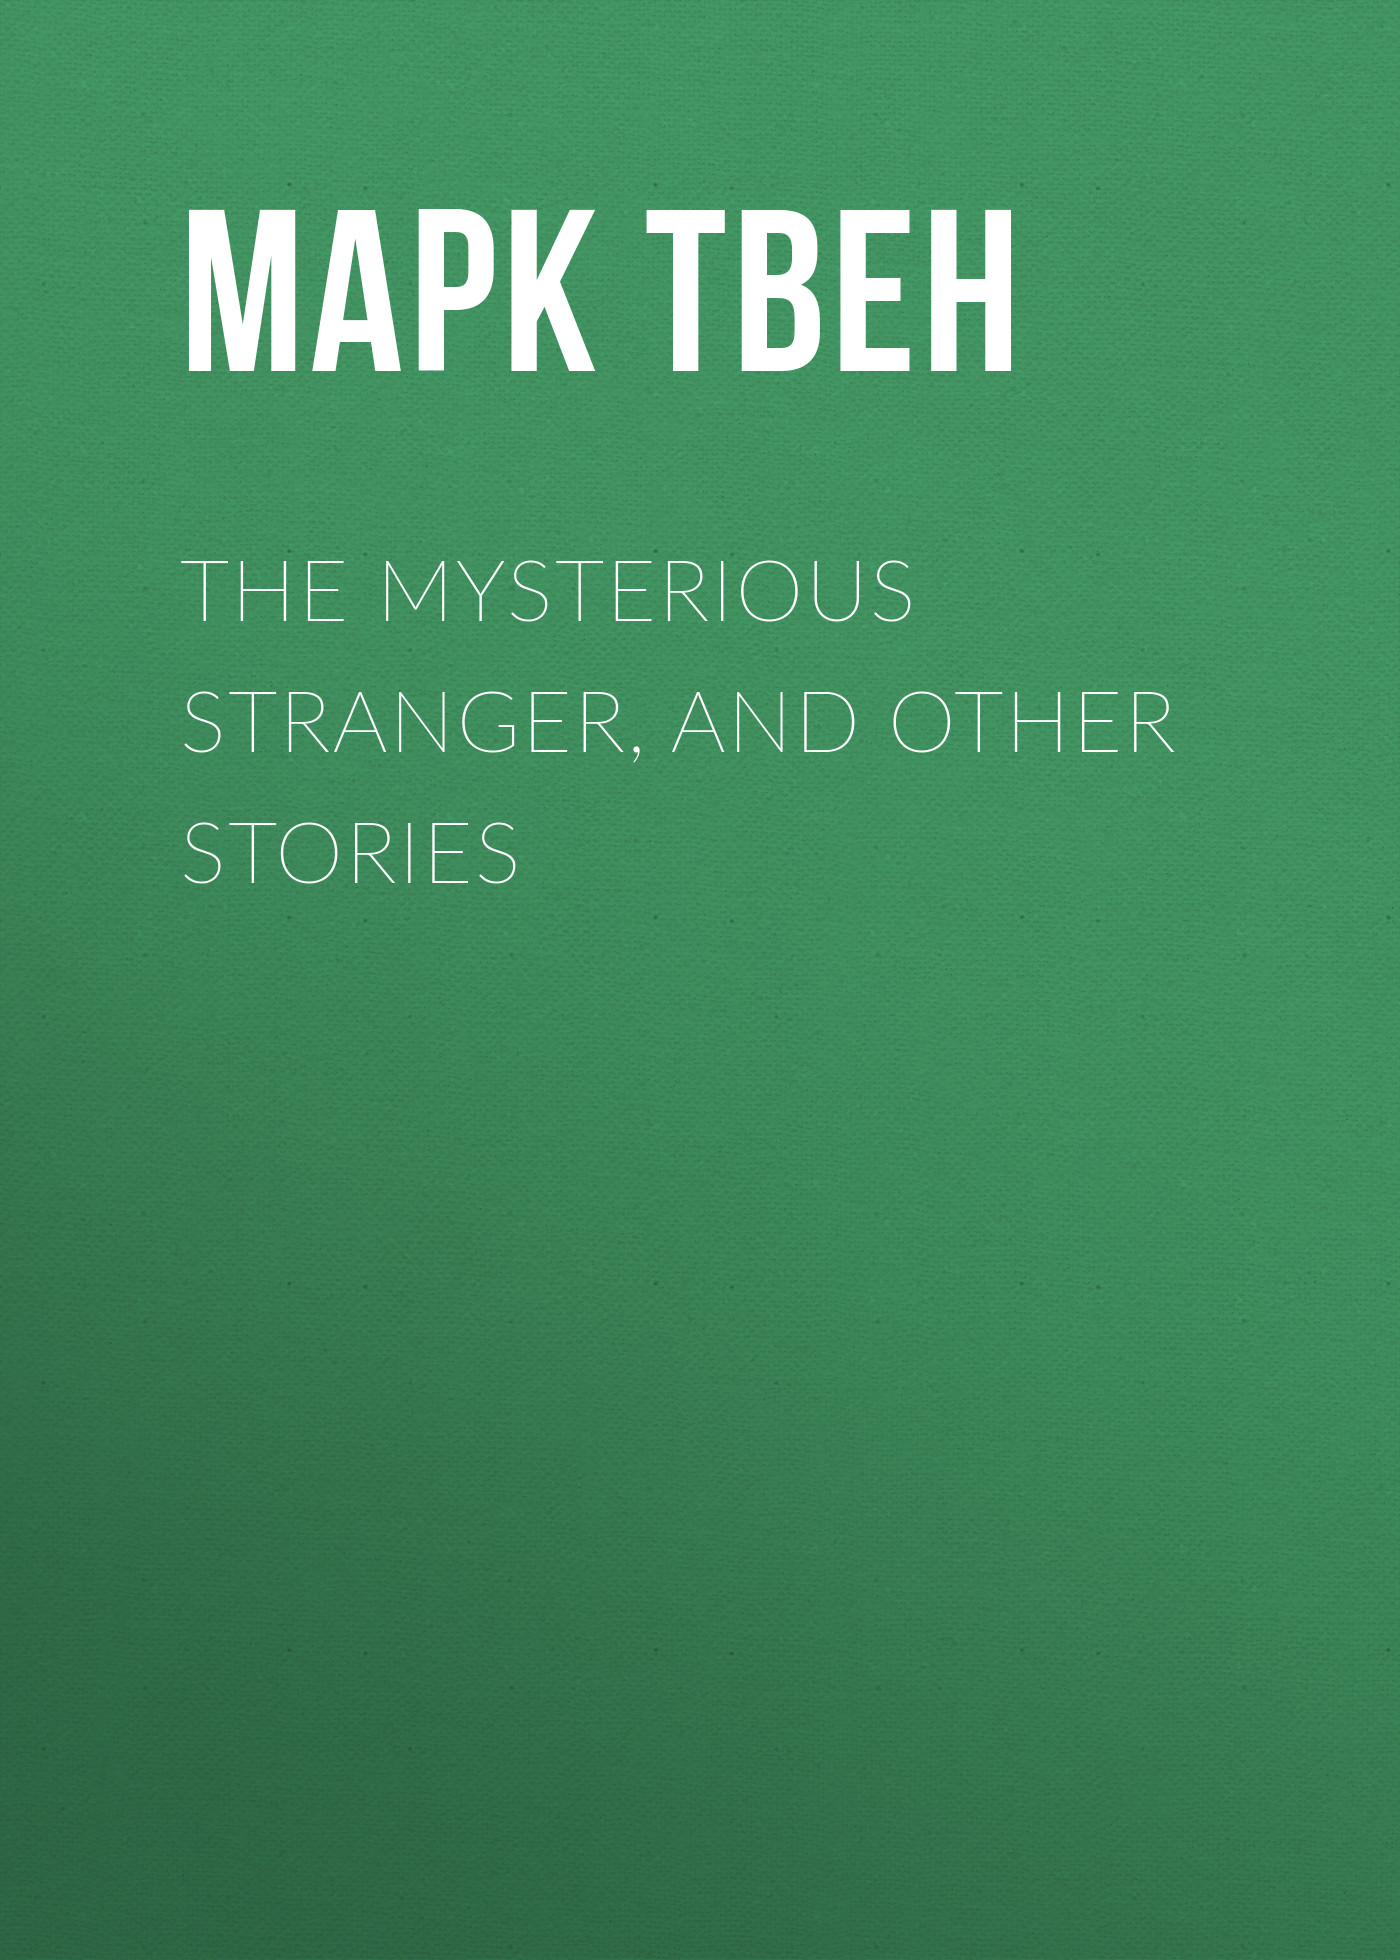 Марк Твен The Mysterious Stranger, and Other Stories марк твен sketches new and old